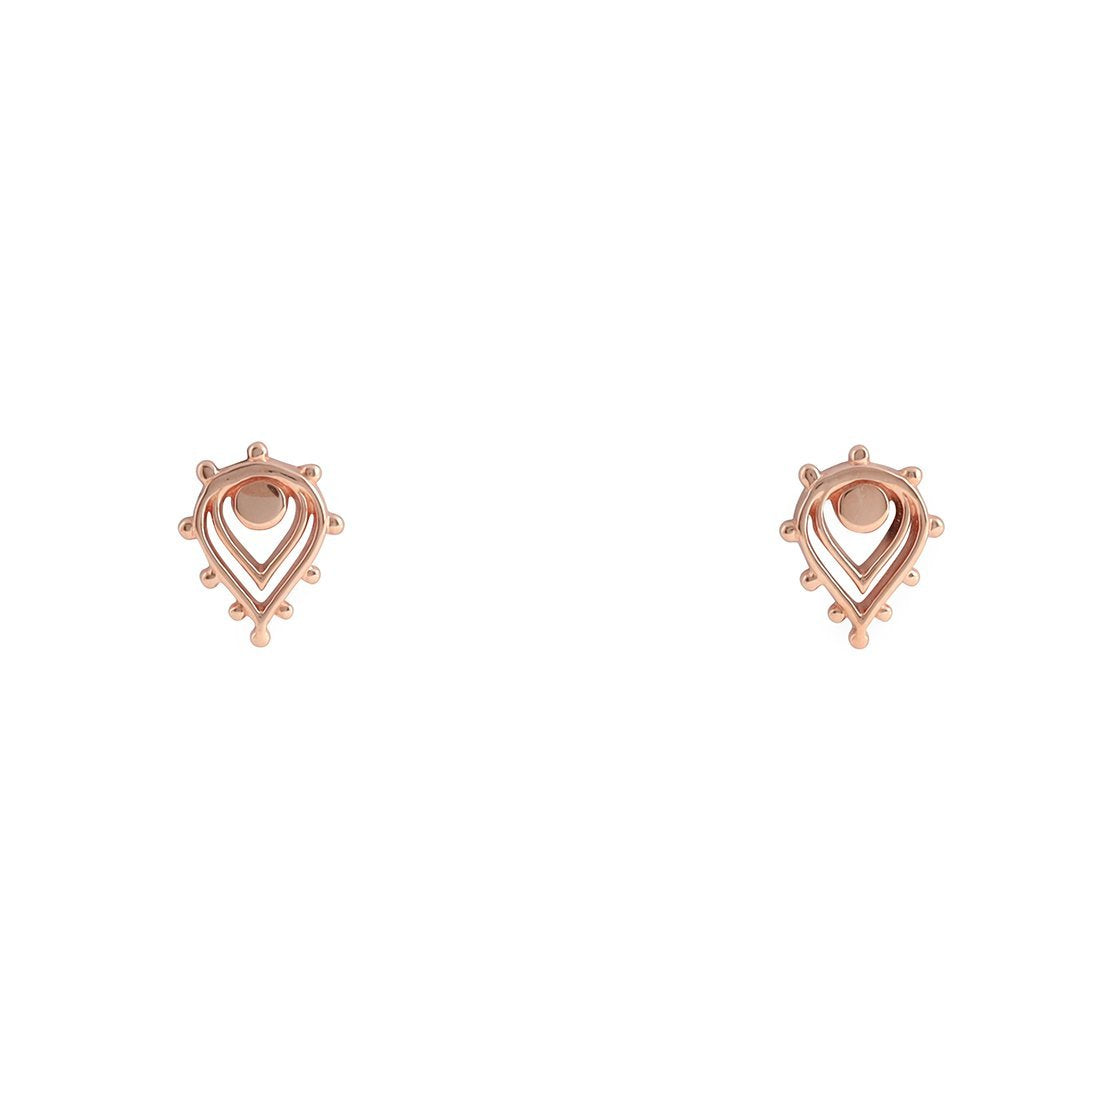 Midsummer Star Earrings Rose Gold Vermeil Sunset Studs